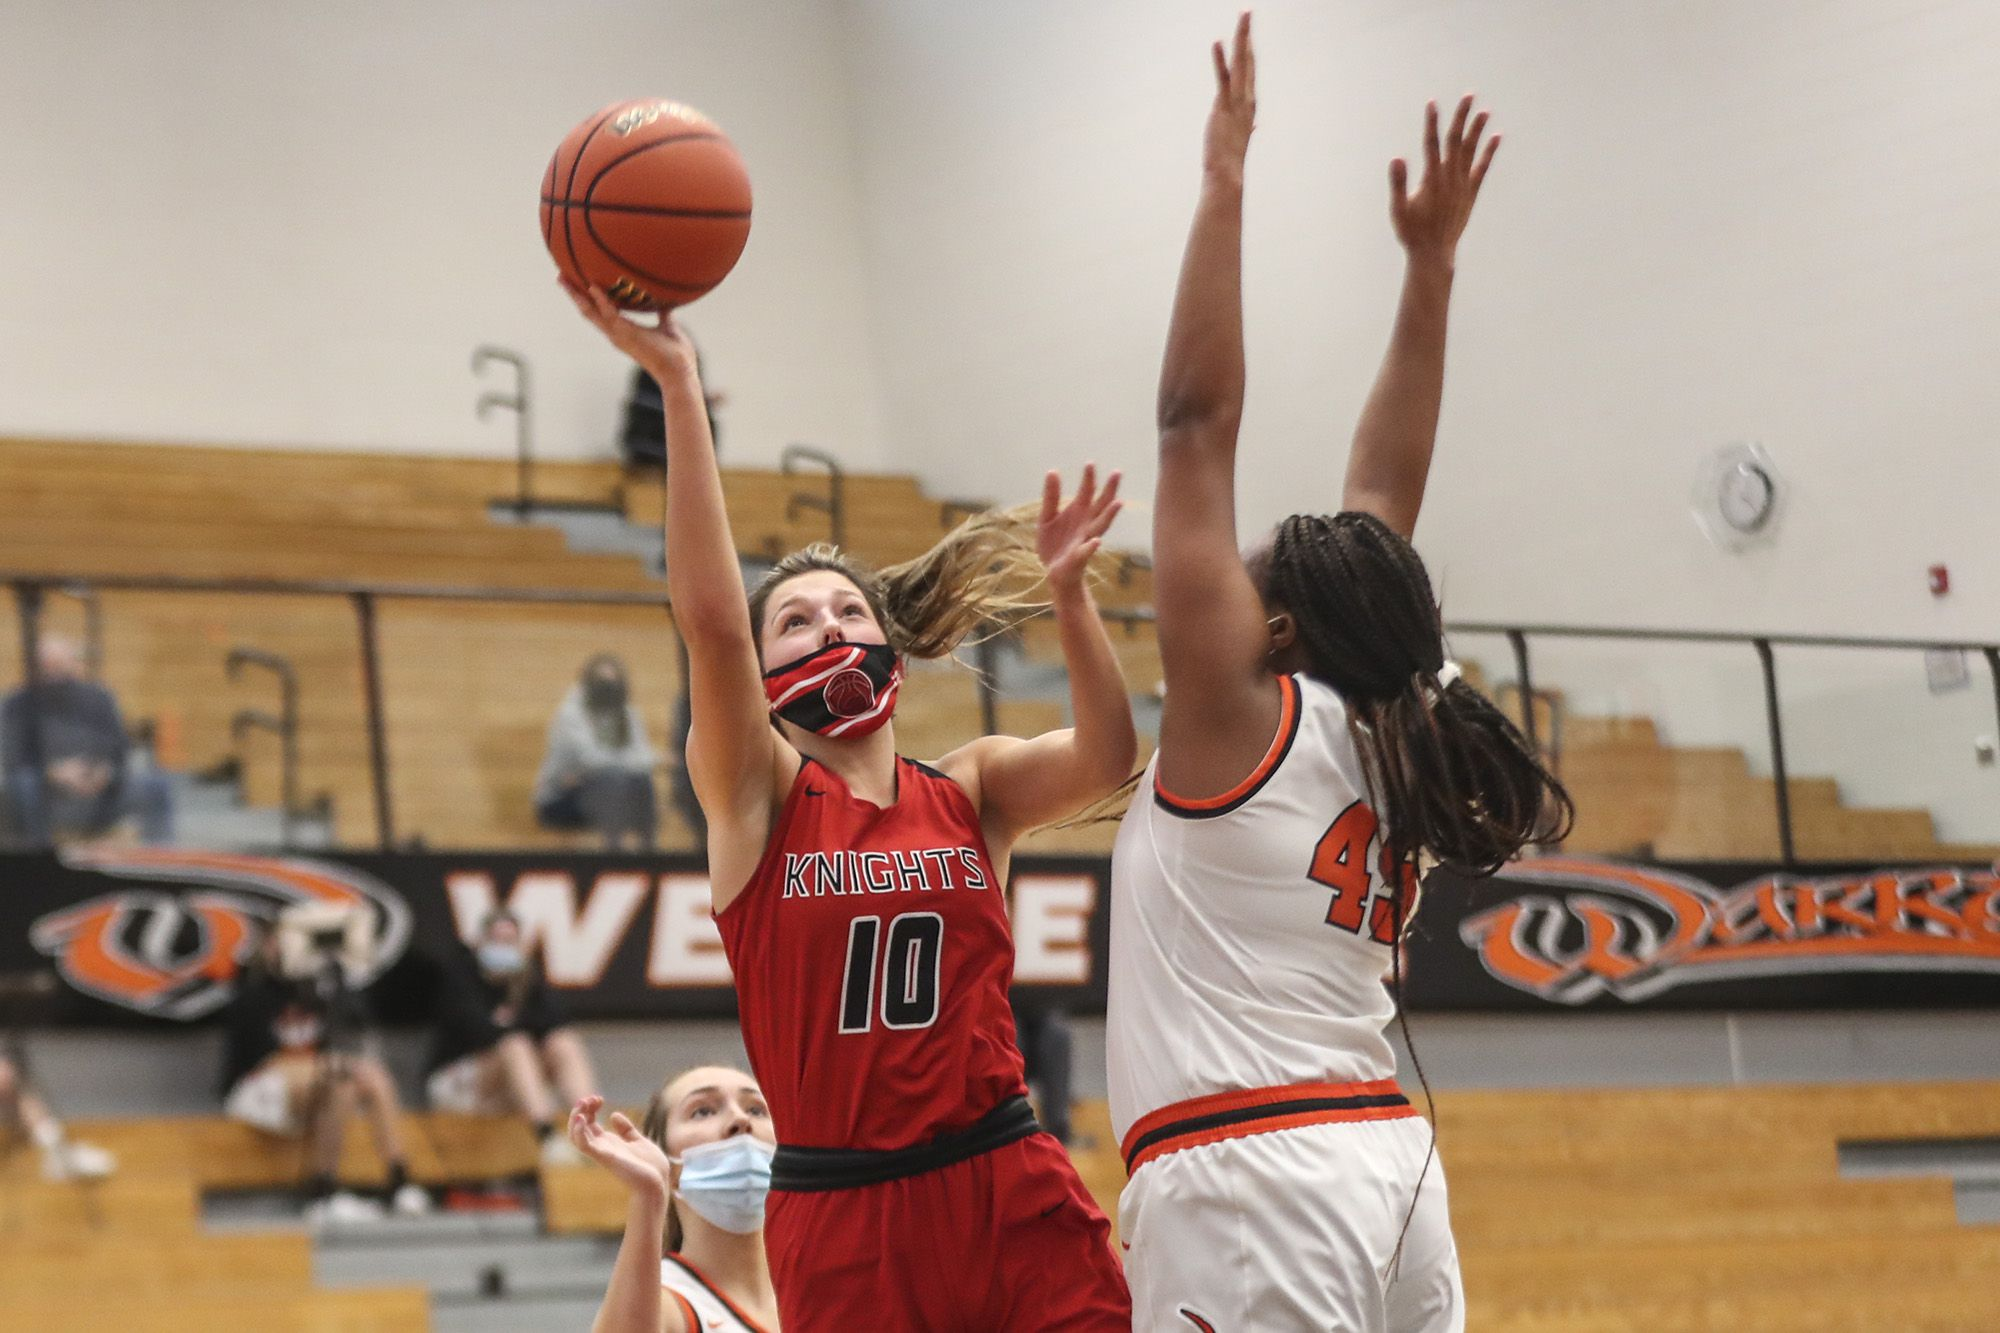 Lincoln-Way Central's Haley Stoklosa makes a basket in traffic on Monday, March 1, 2021, at Lincoln-Way West High School in New Lenox, Ill.